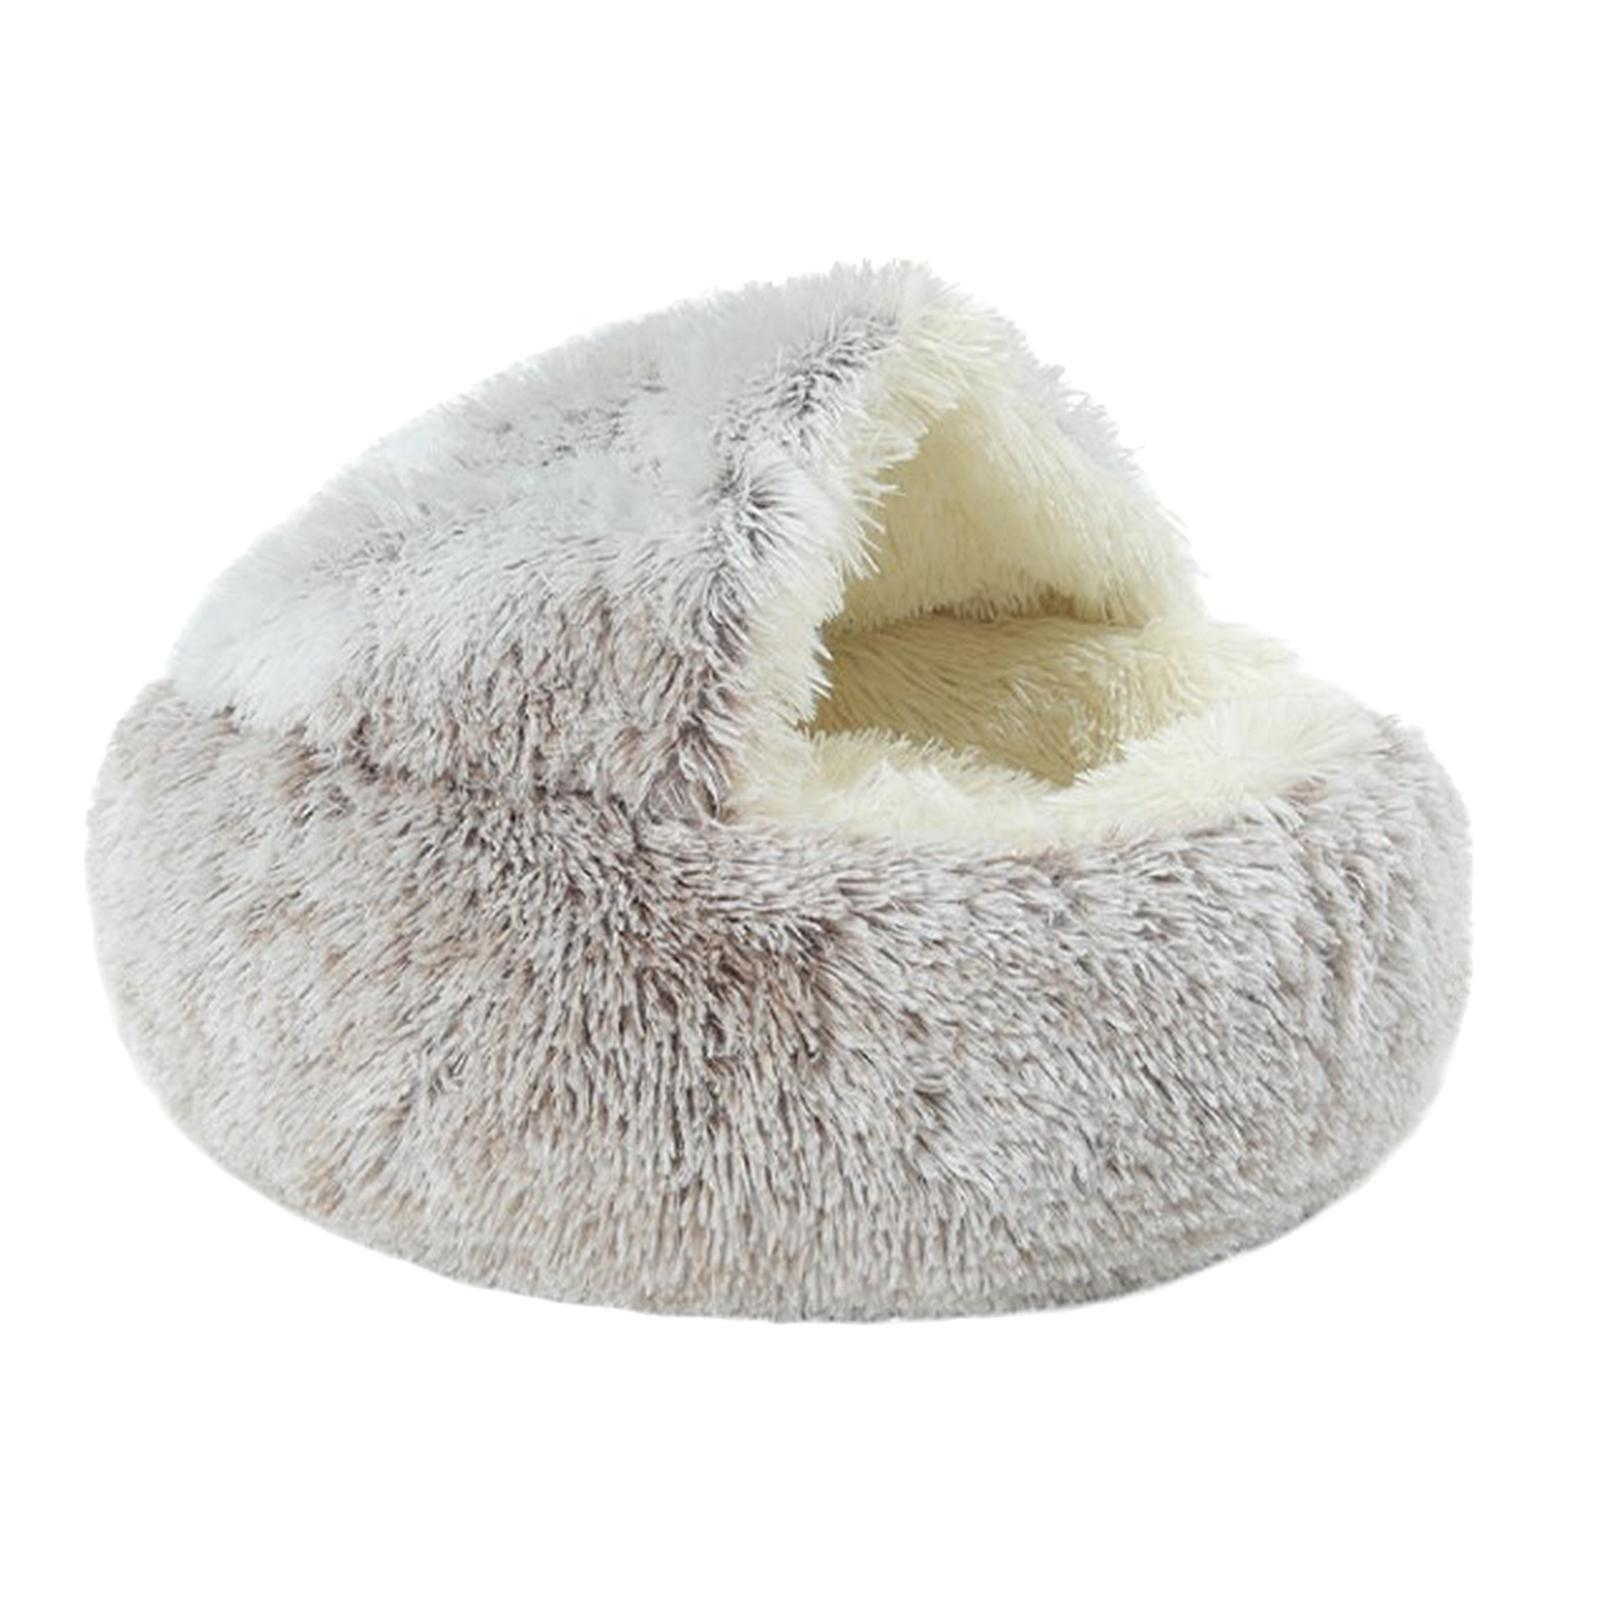 thumbnail 48 - Plush Pet Dog Cat Bed Fluffy Soft Warm Calming Bed Sleeping Kennel Cave Nest